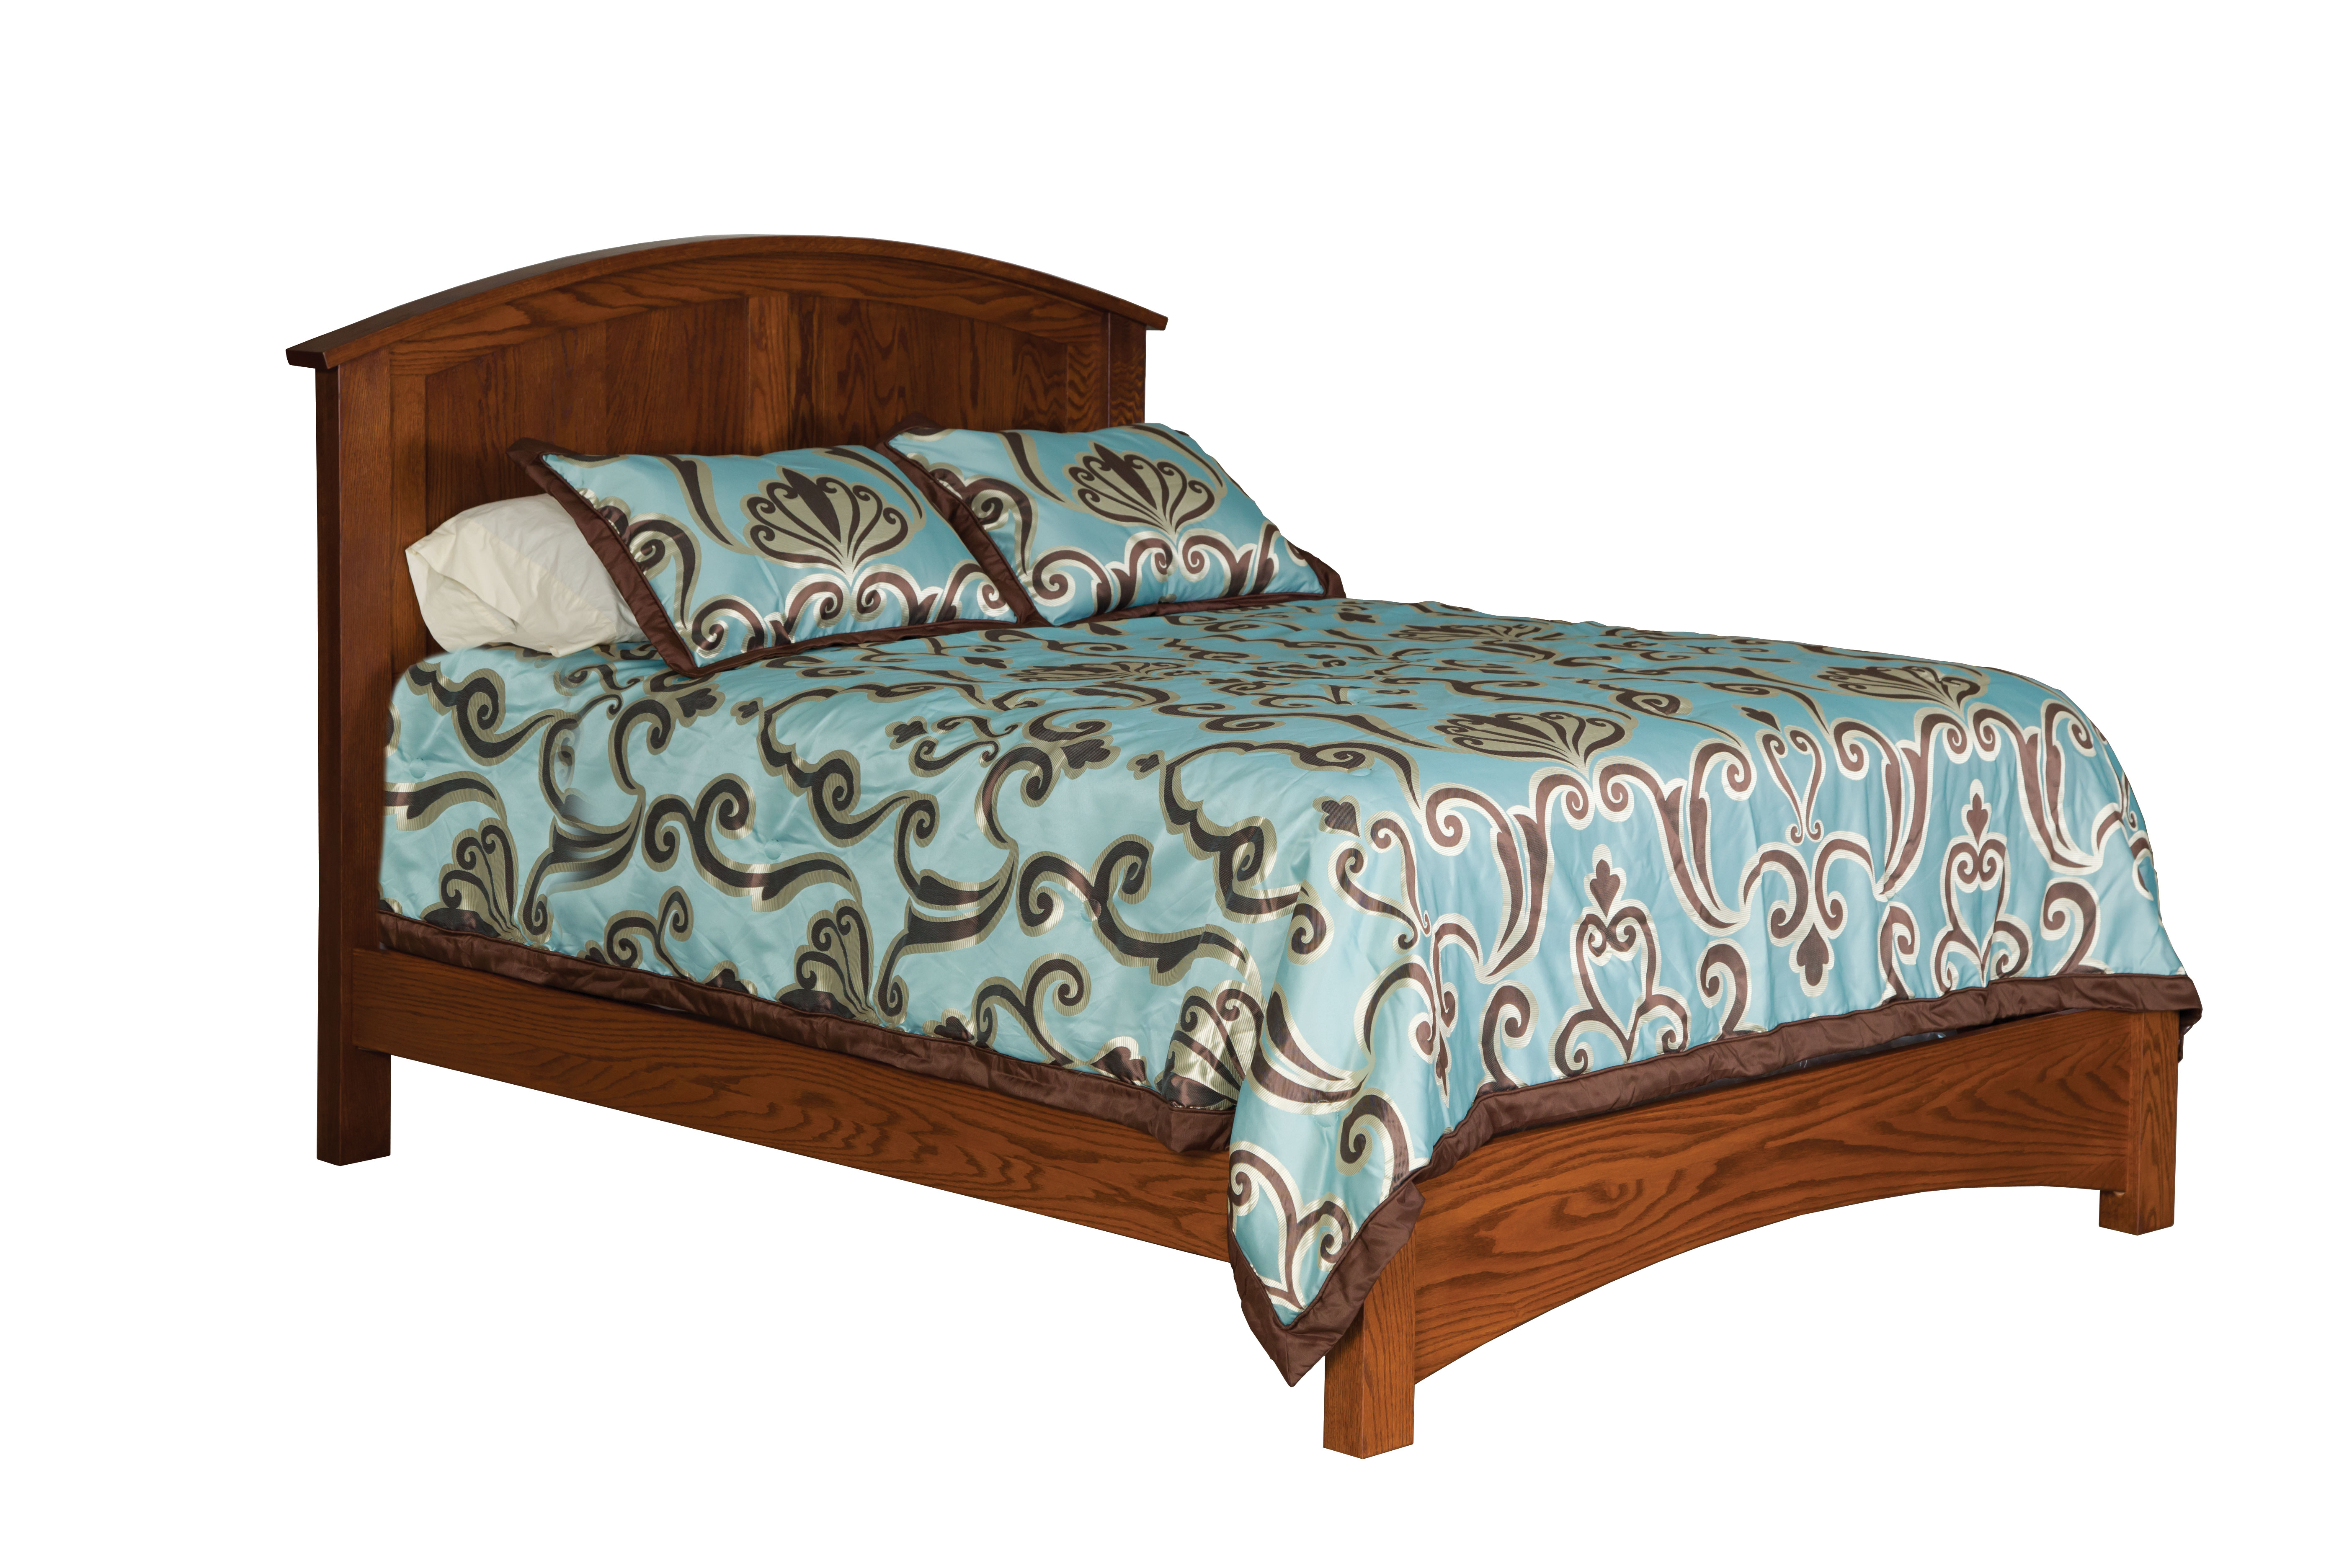 Buckeye Economy Panel Bed | Amish Valley Products